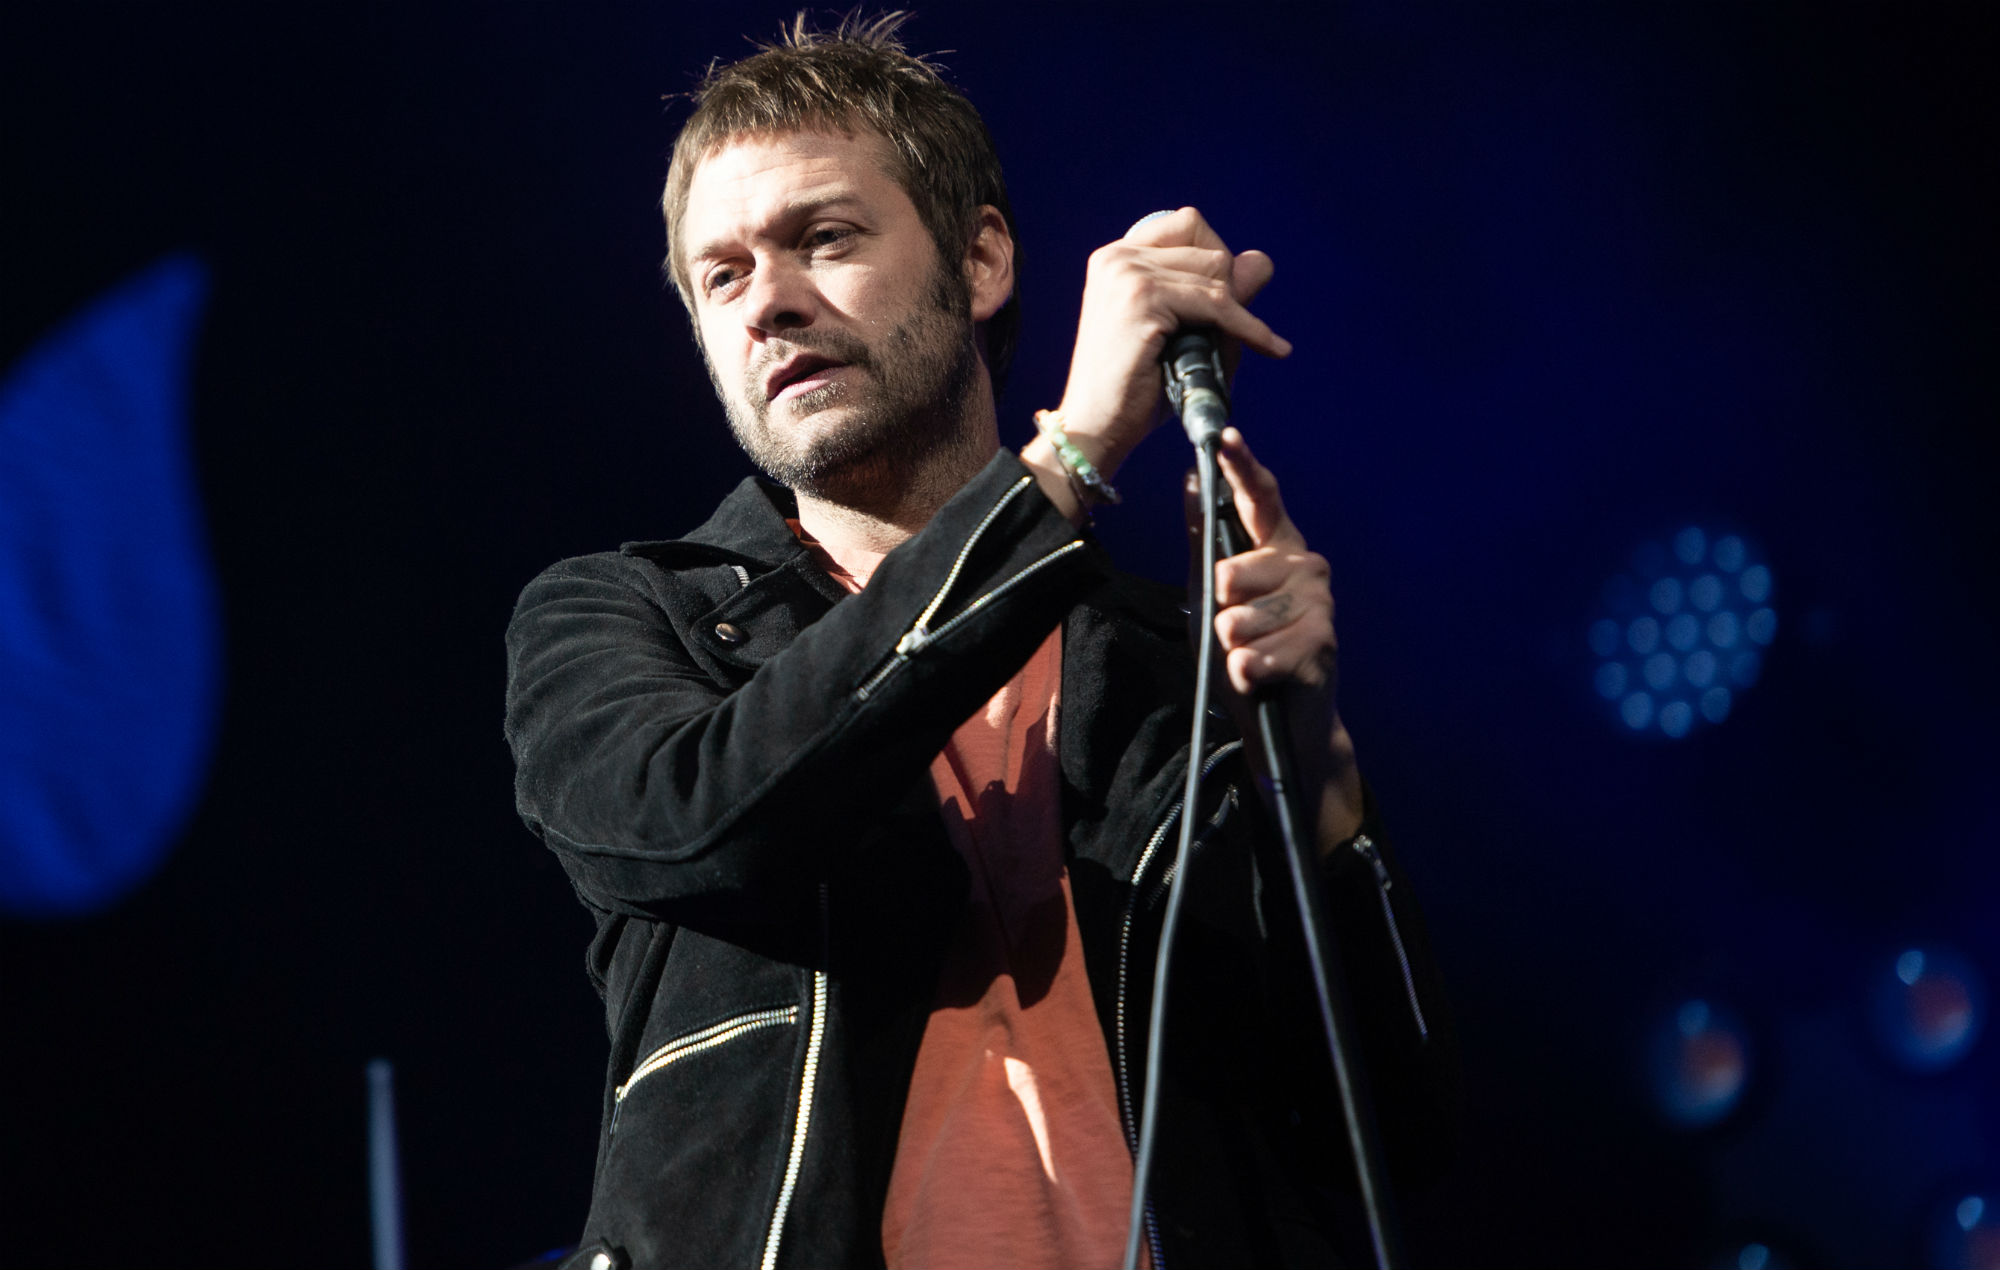 Kasabian's Tom Meighan speaks out on assault cost and exit from band